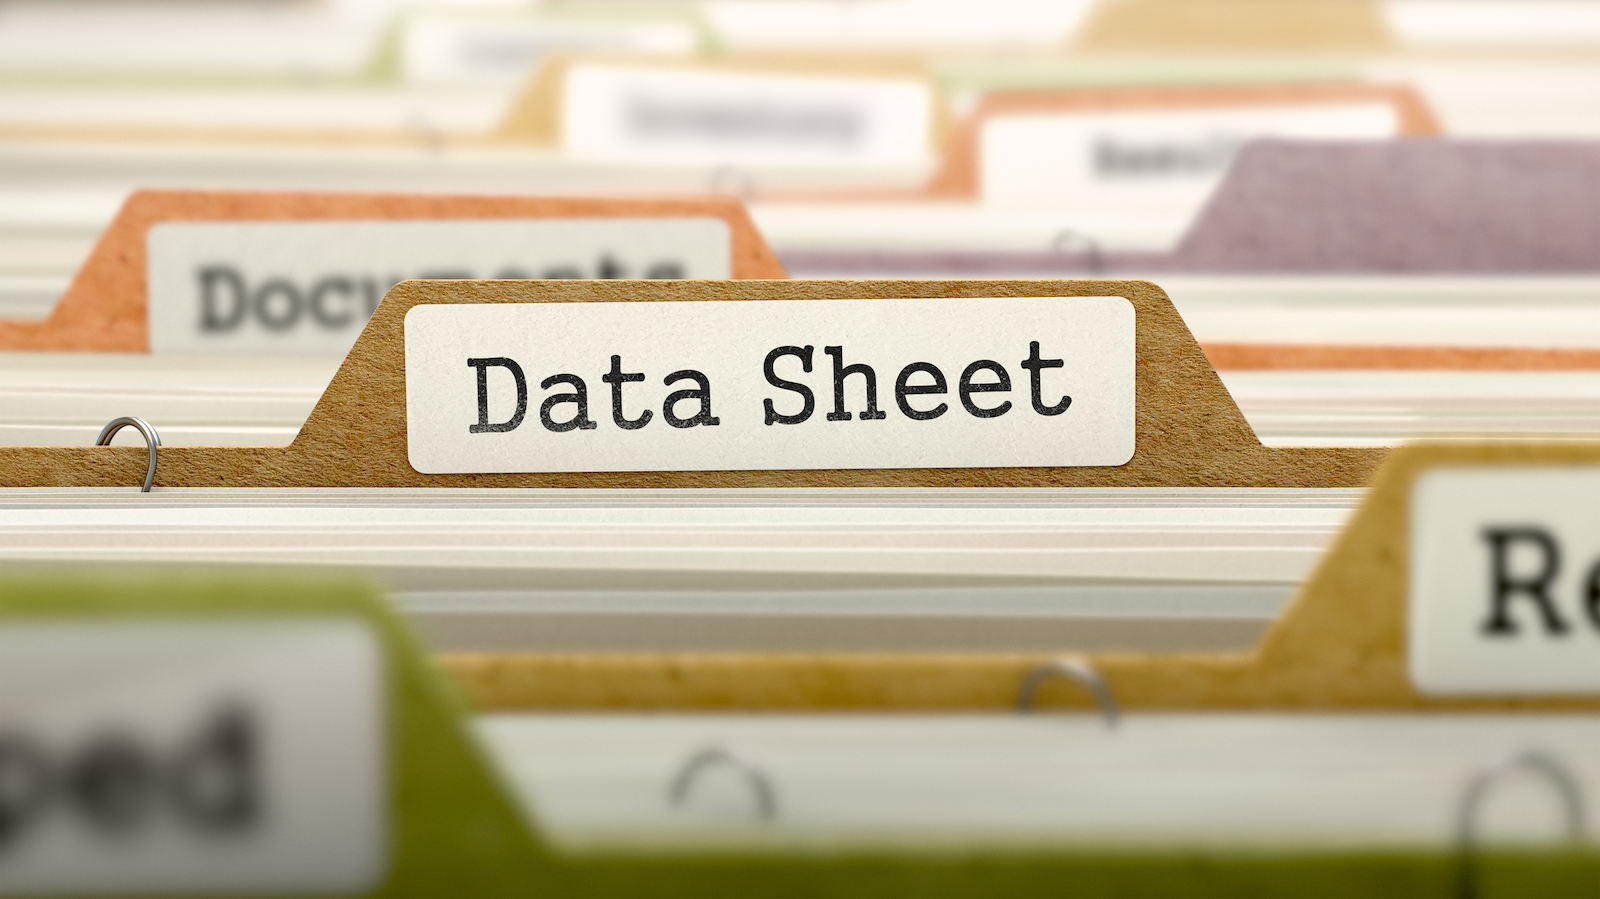 Data Sheets - RH Nuttall Ltd